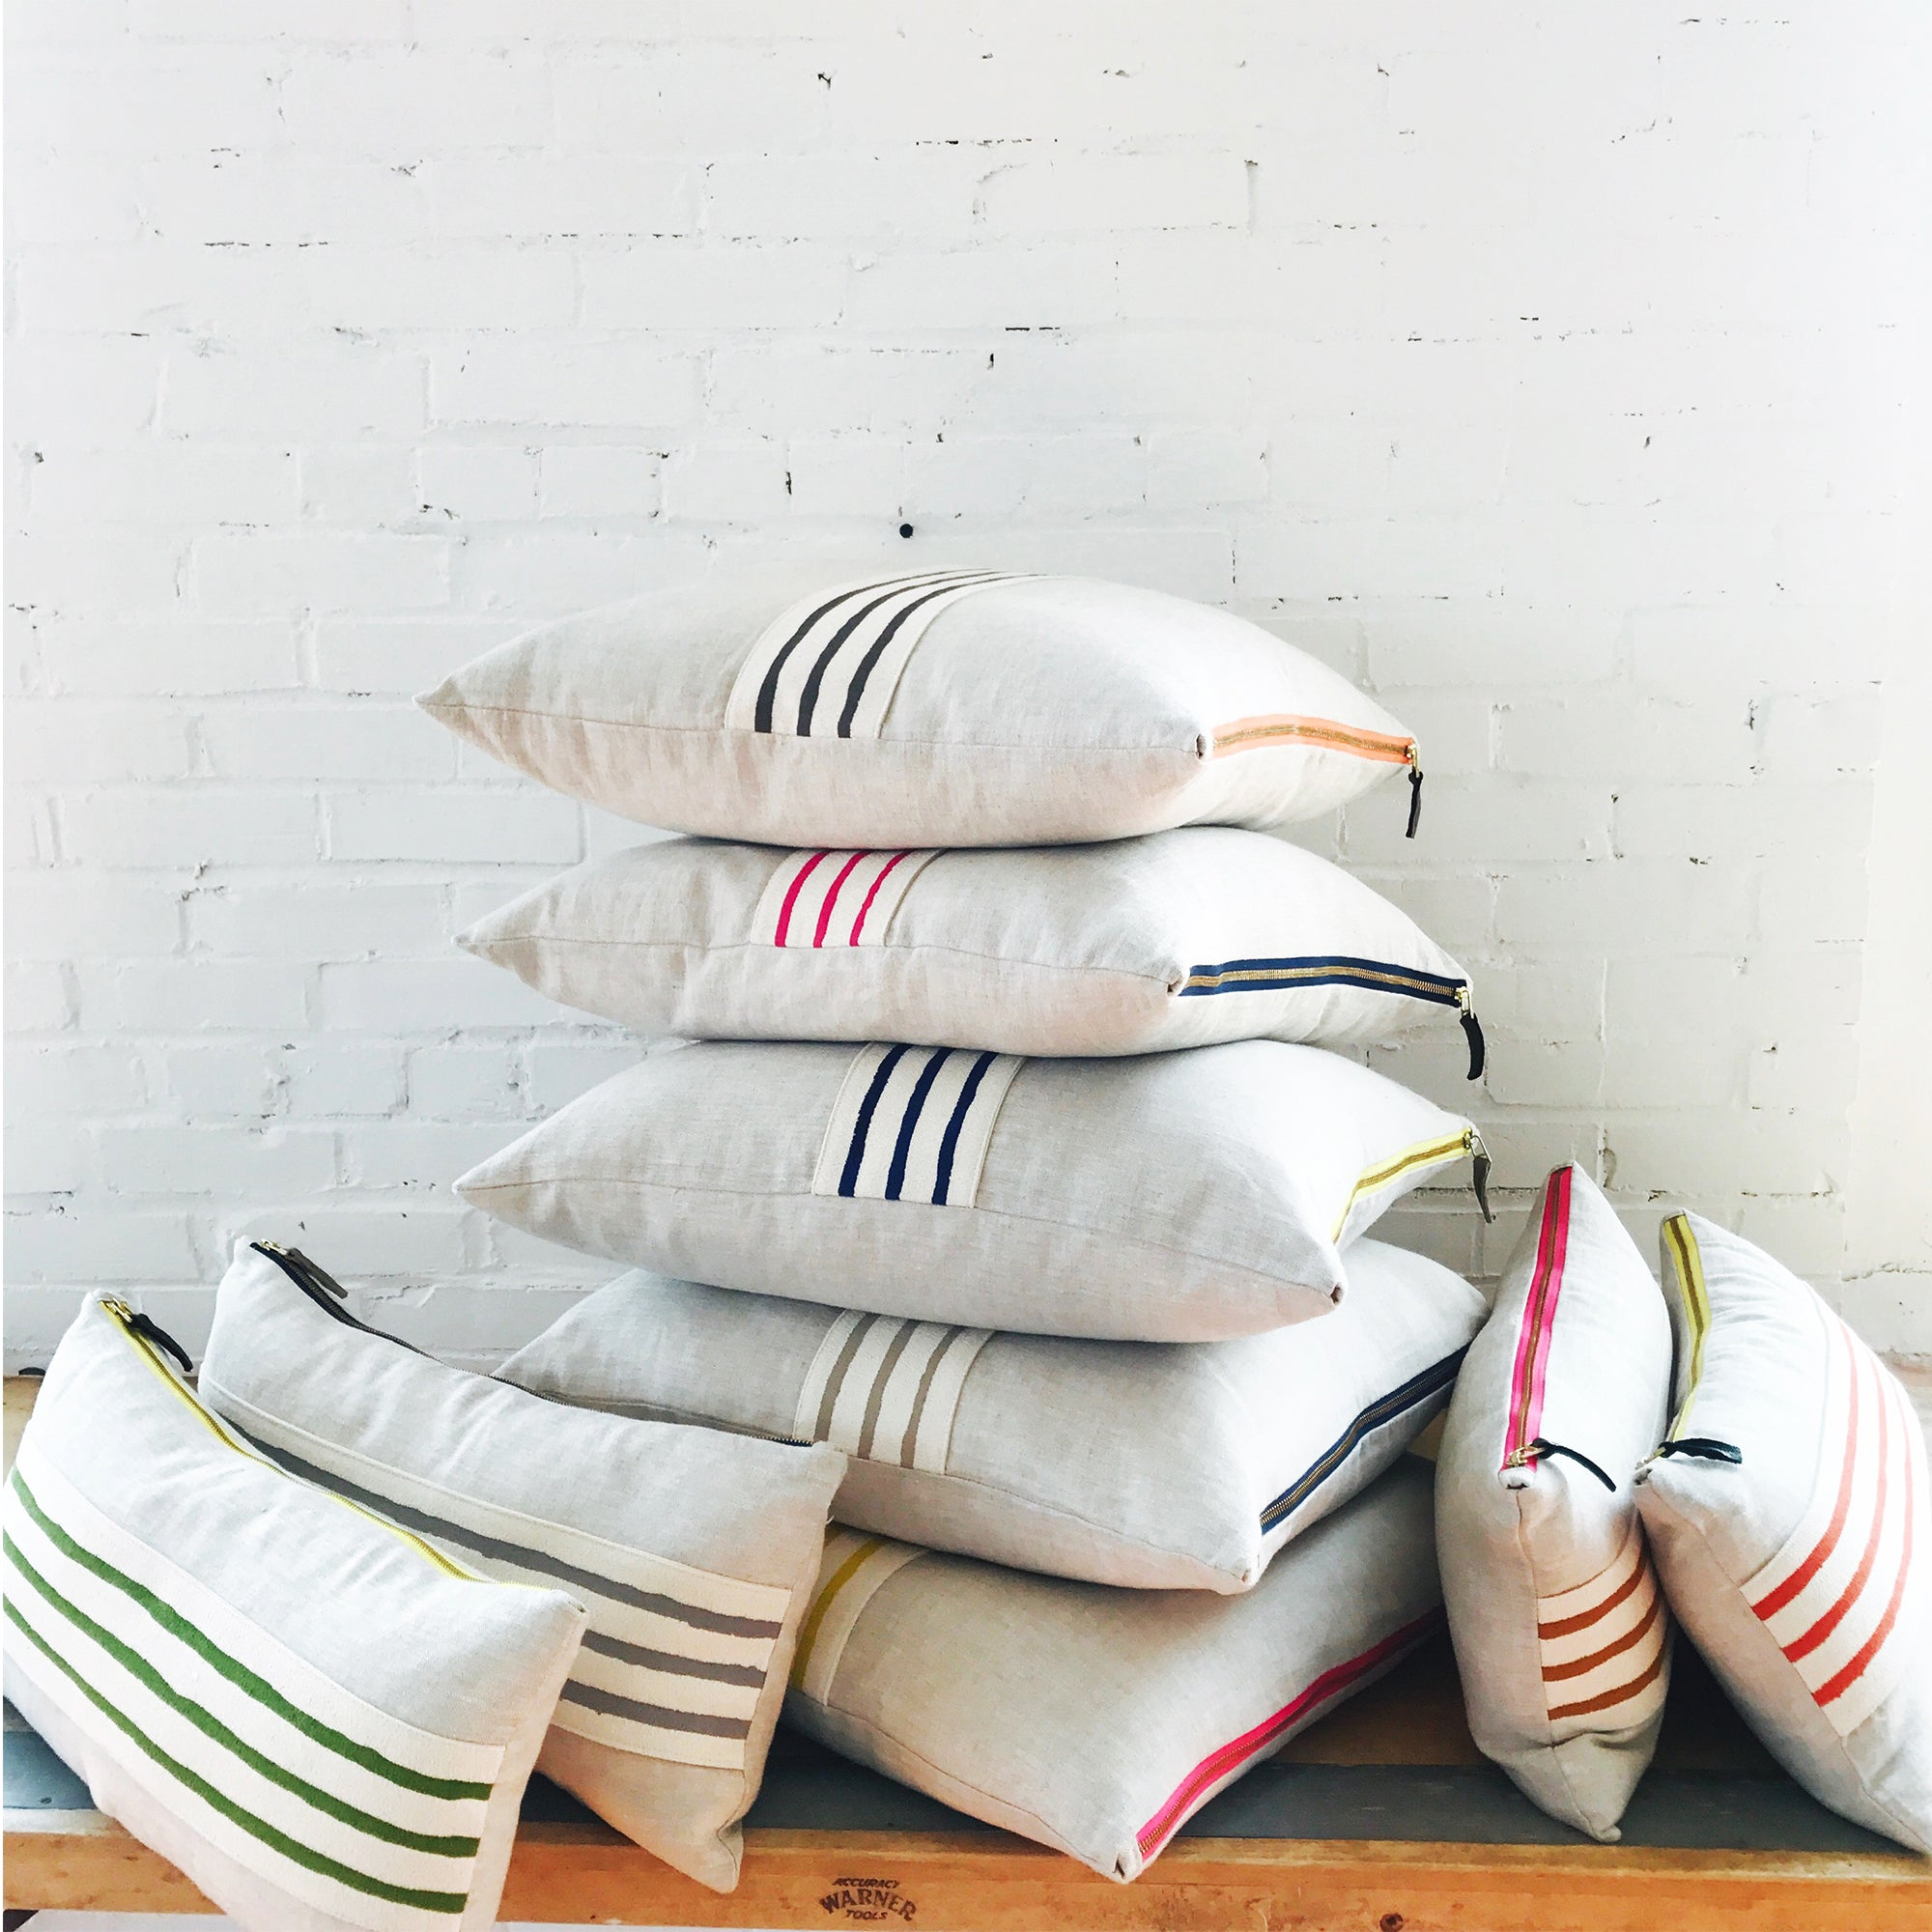 3 LINE RAINY DAY BAND LINEN PILLOW COVER